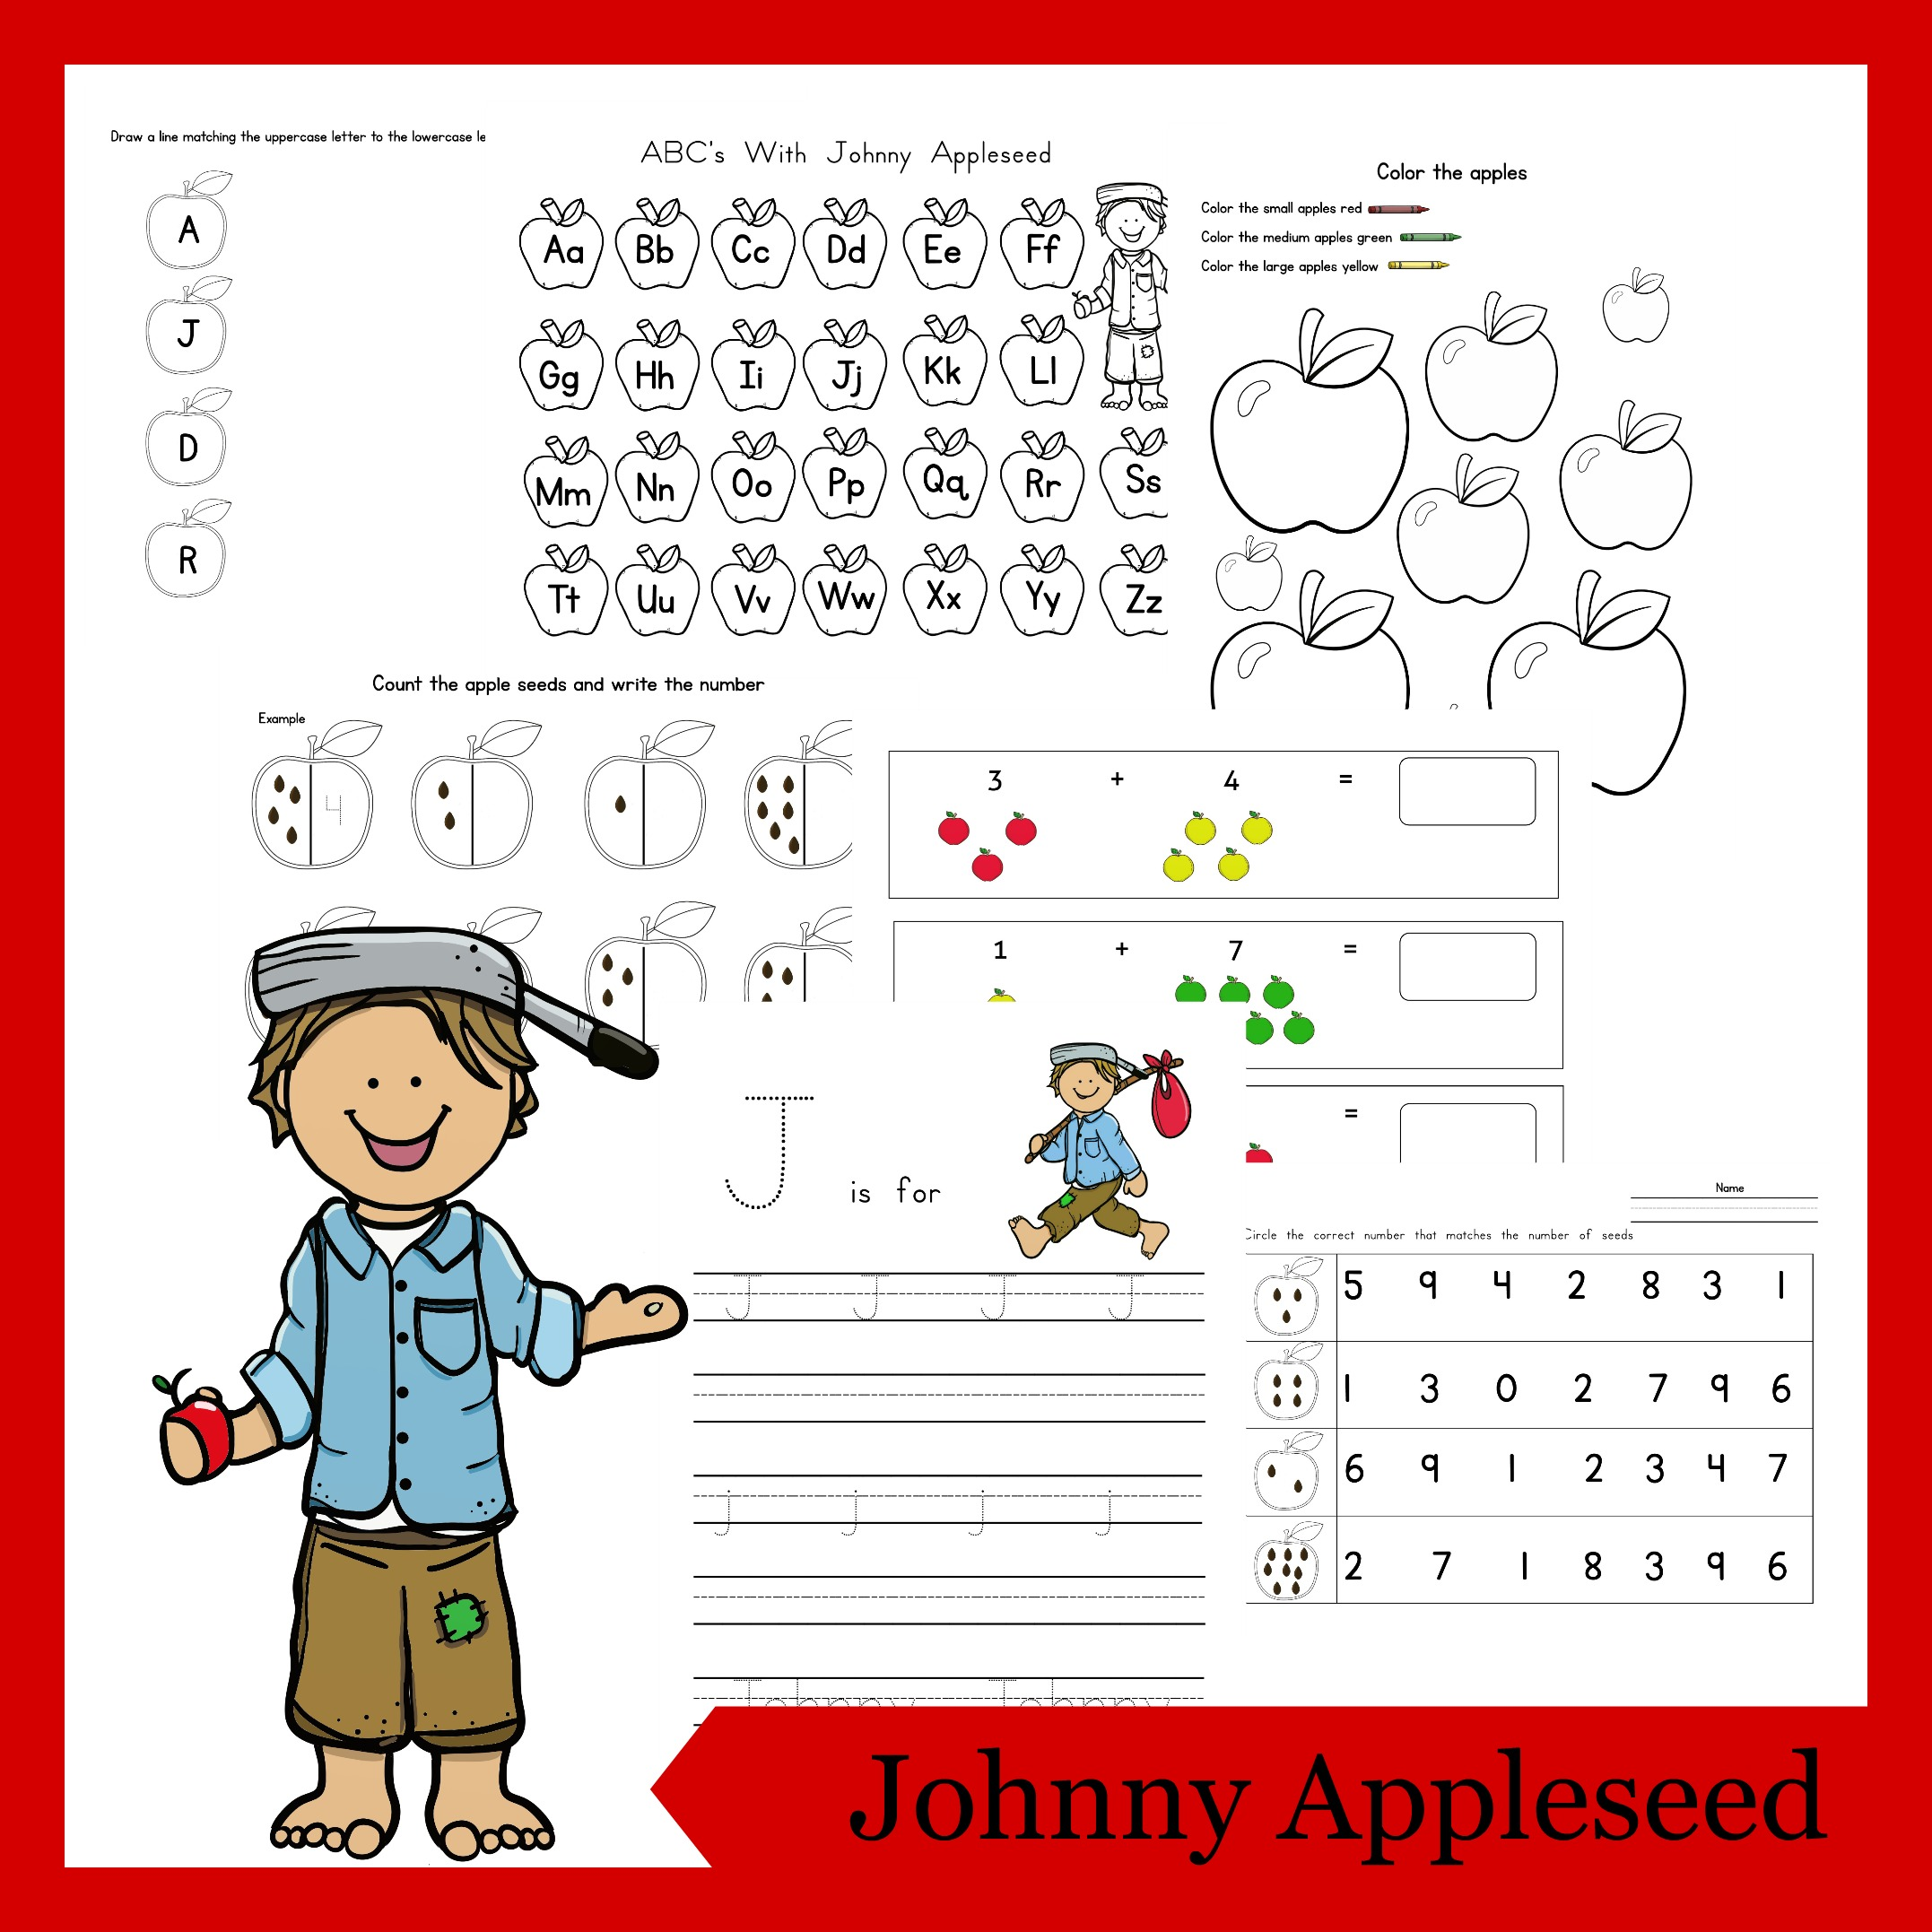 picture relating to Johnny Appleseed Printable Story titled Johnny Appleseed Printable